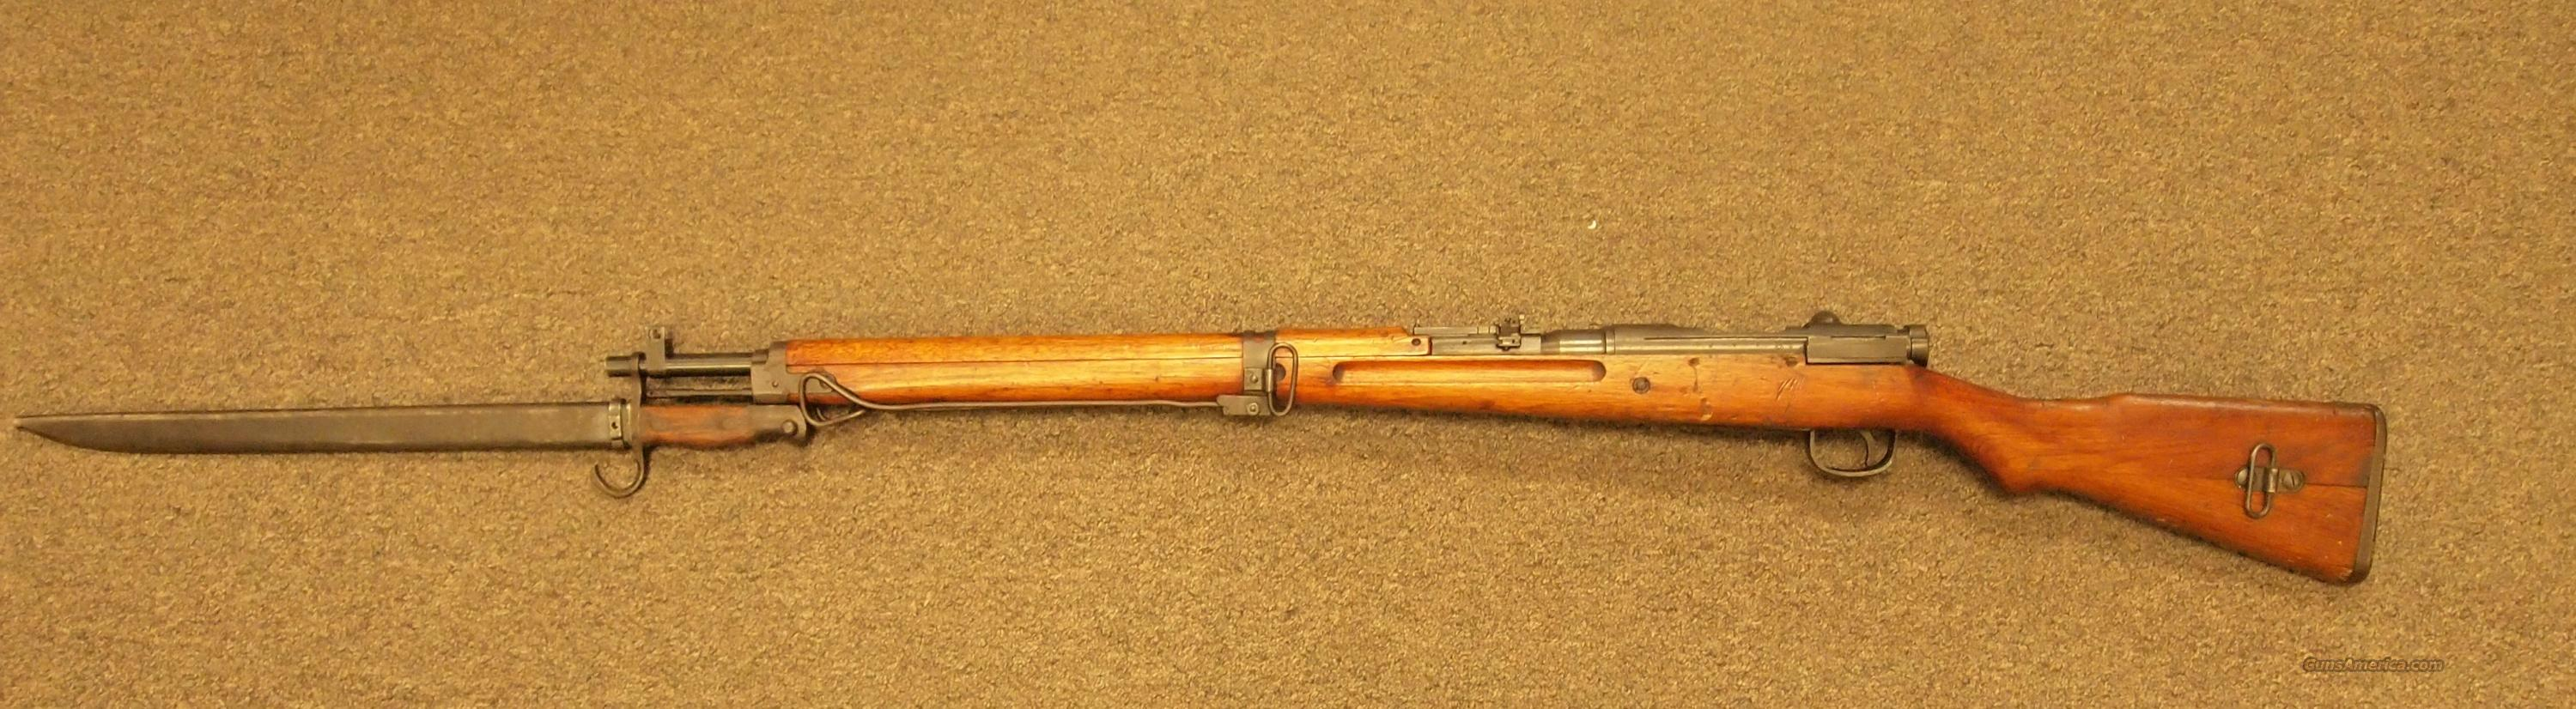 Arisaka 7.7 Jap   Guns > Rifles > Military Misc. Rifles Non-US > Other